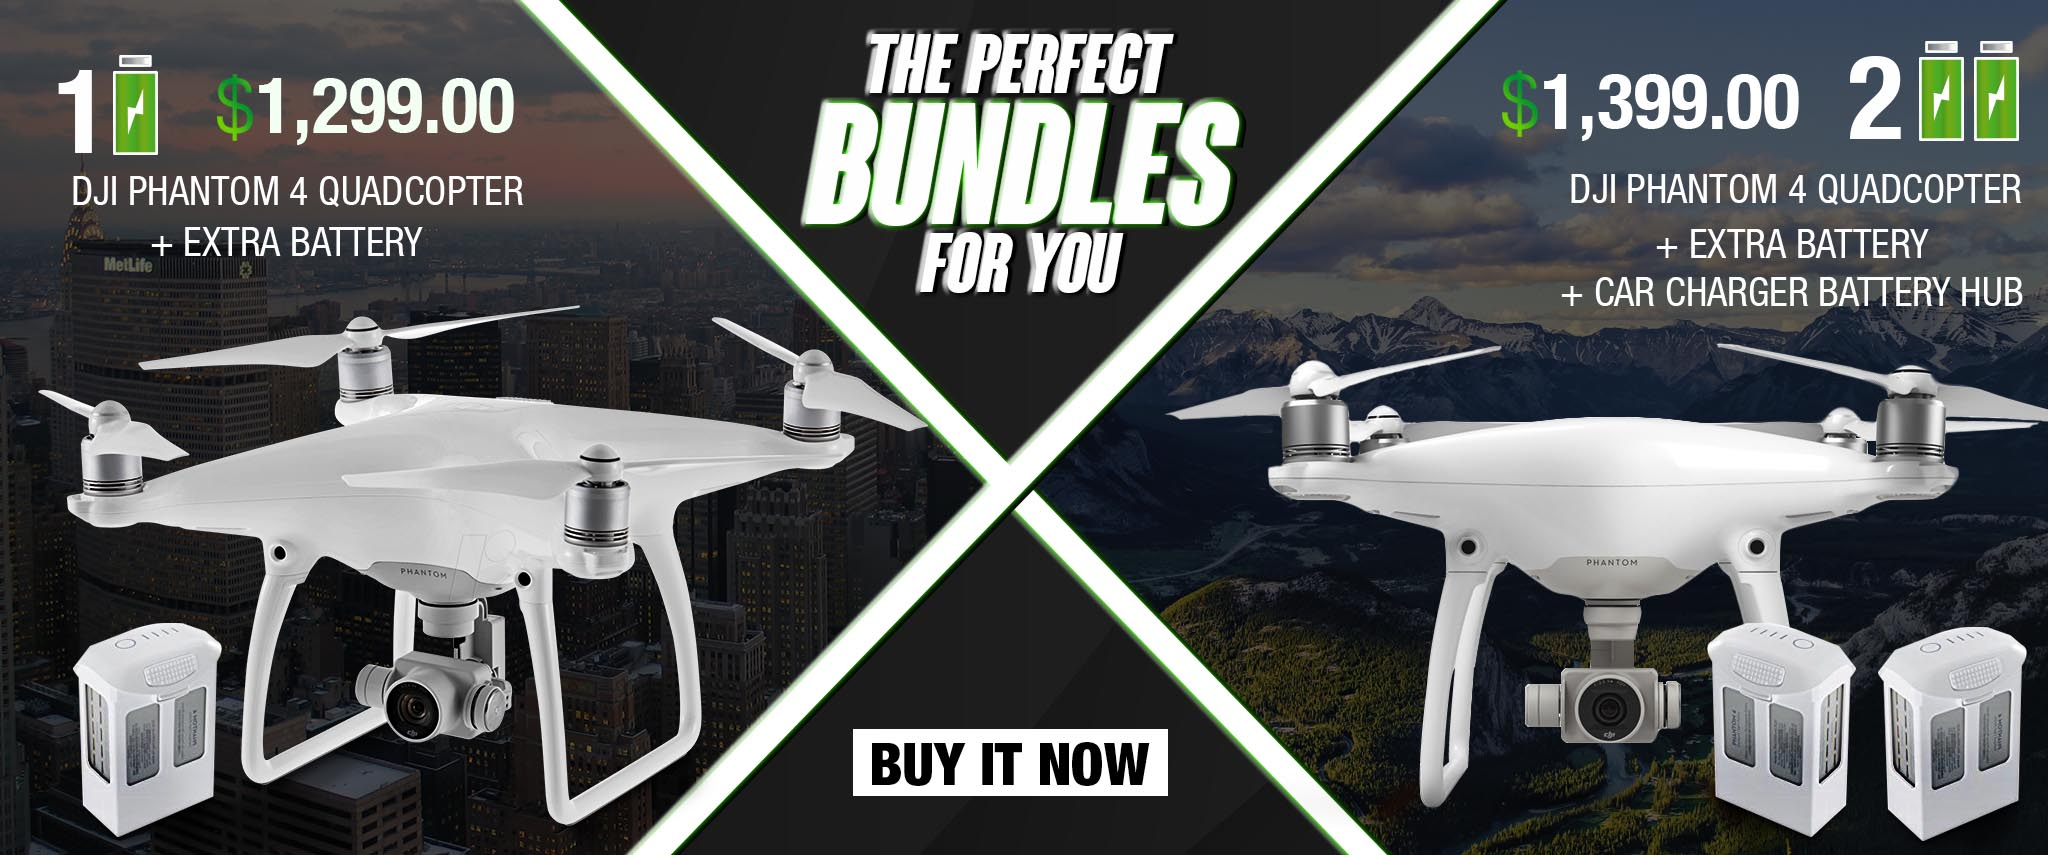 DJI Phantom 4 Sale, new low prices